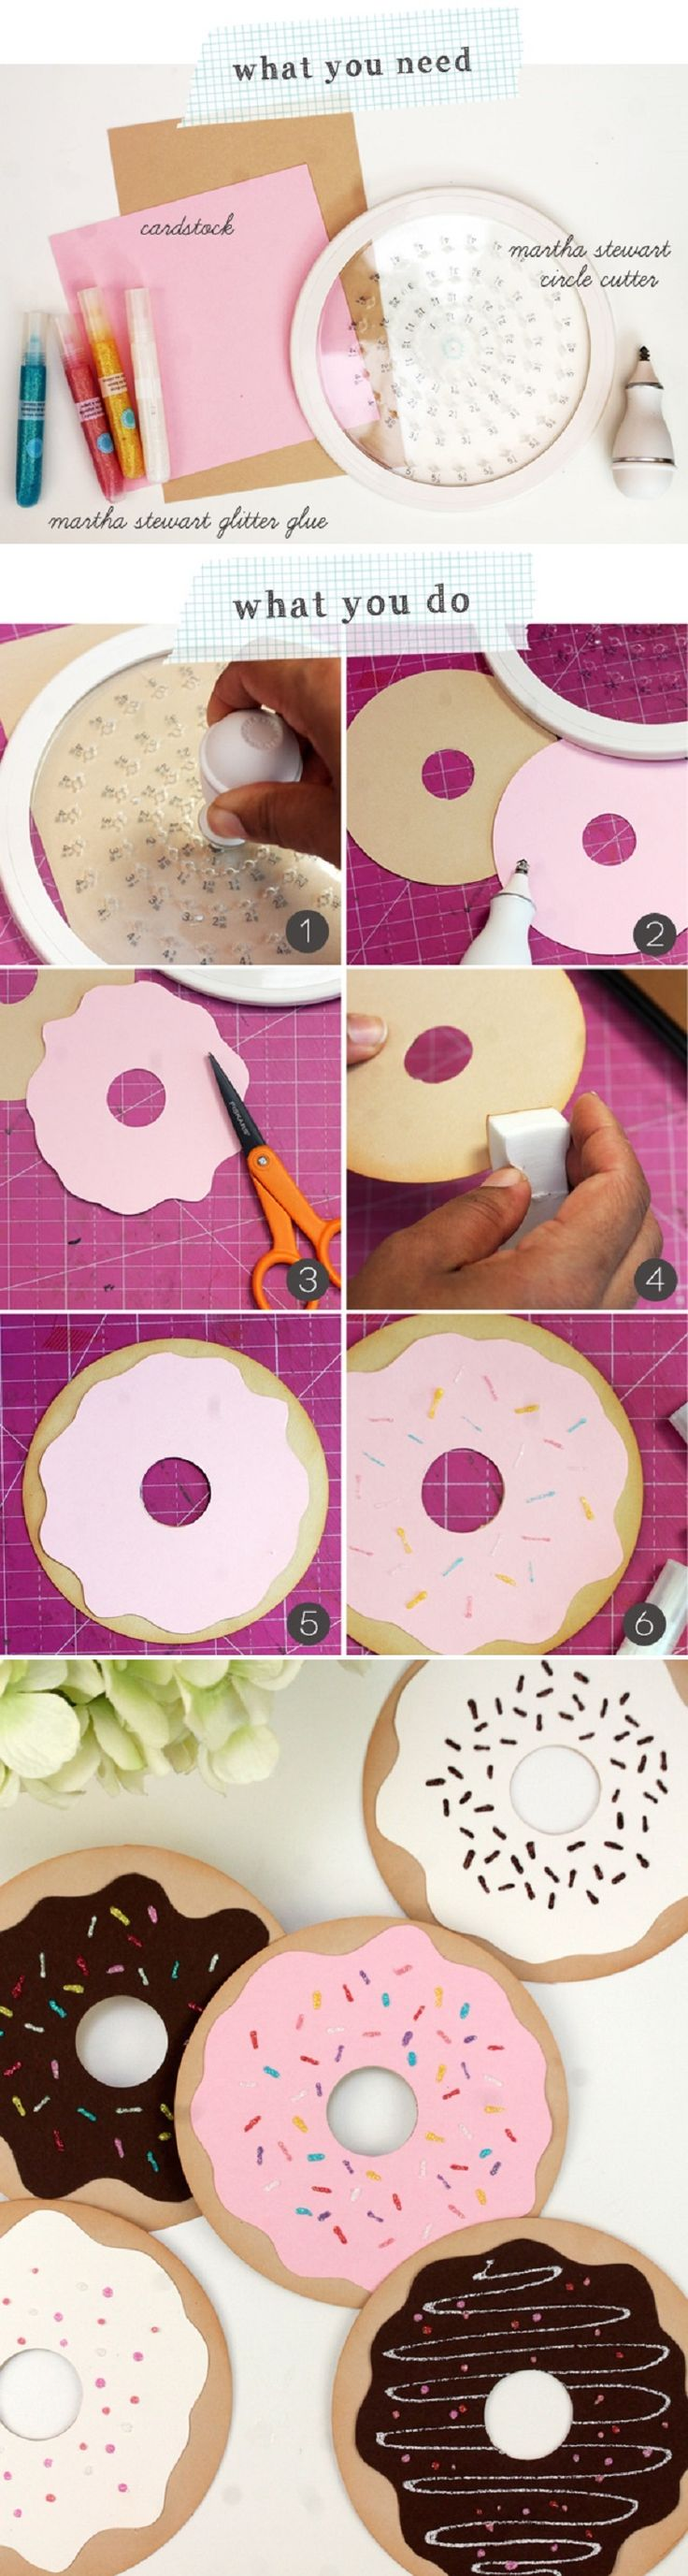 DIY Paper Donut Valentines - 15 Most PINteresting DIY Paper Decorations | GleamItUp